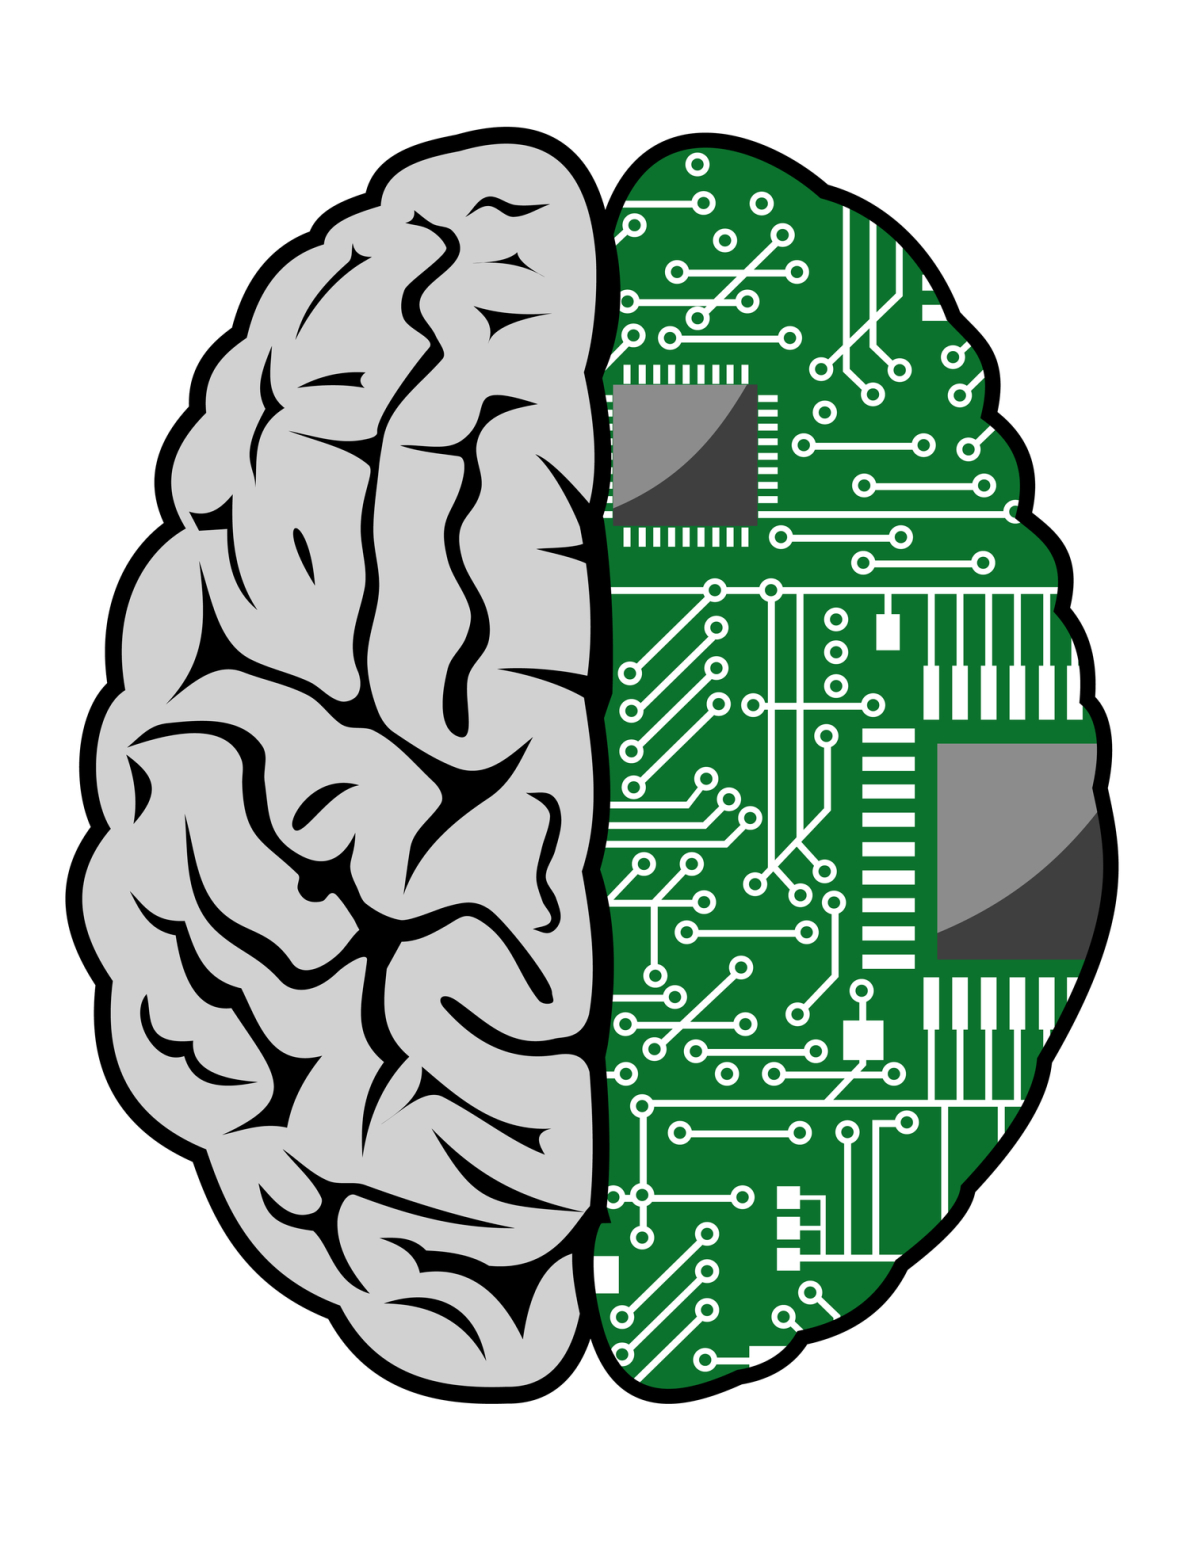 Brain clipart engineering. Free cliparts download clip